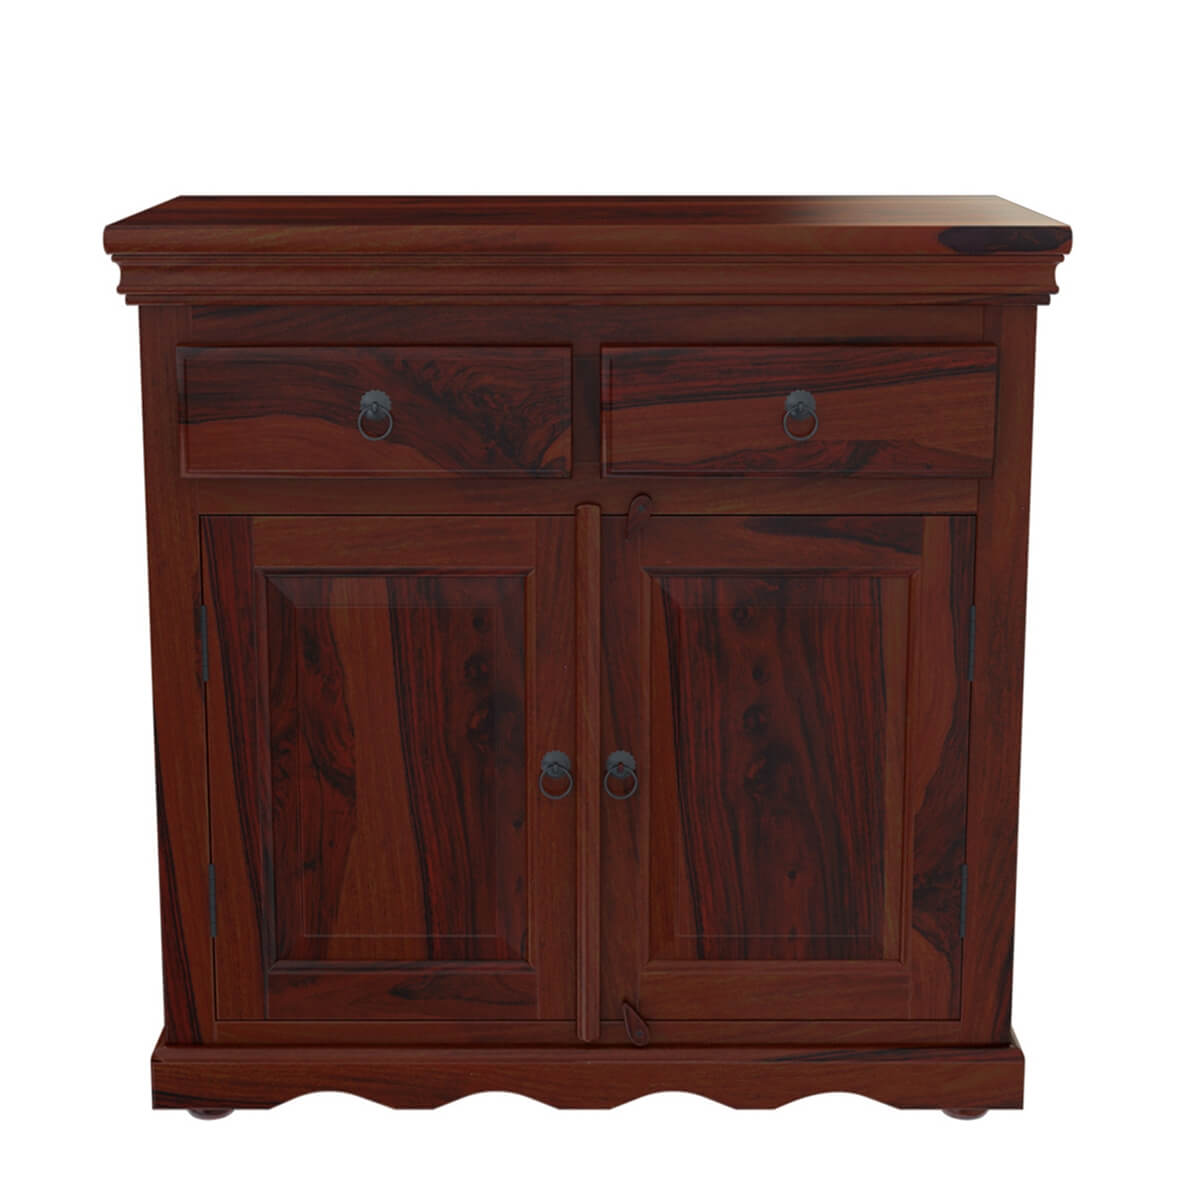 Unfinished Kitchen Cabinets Tampa Tampa Rustic Solid Wood Handmade 2 Drawer Buffet Cabinet